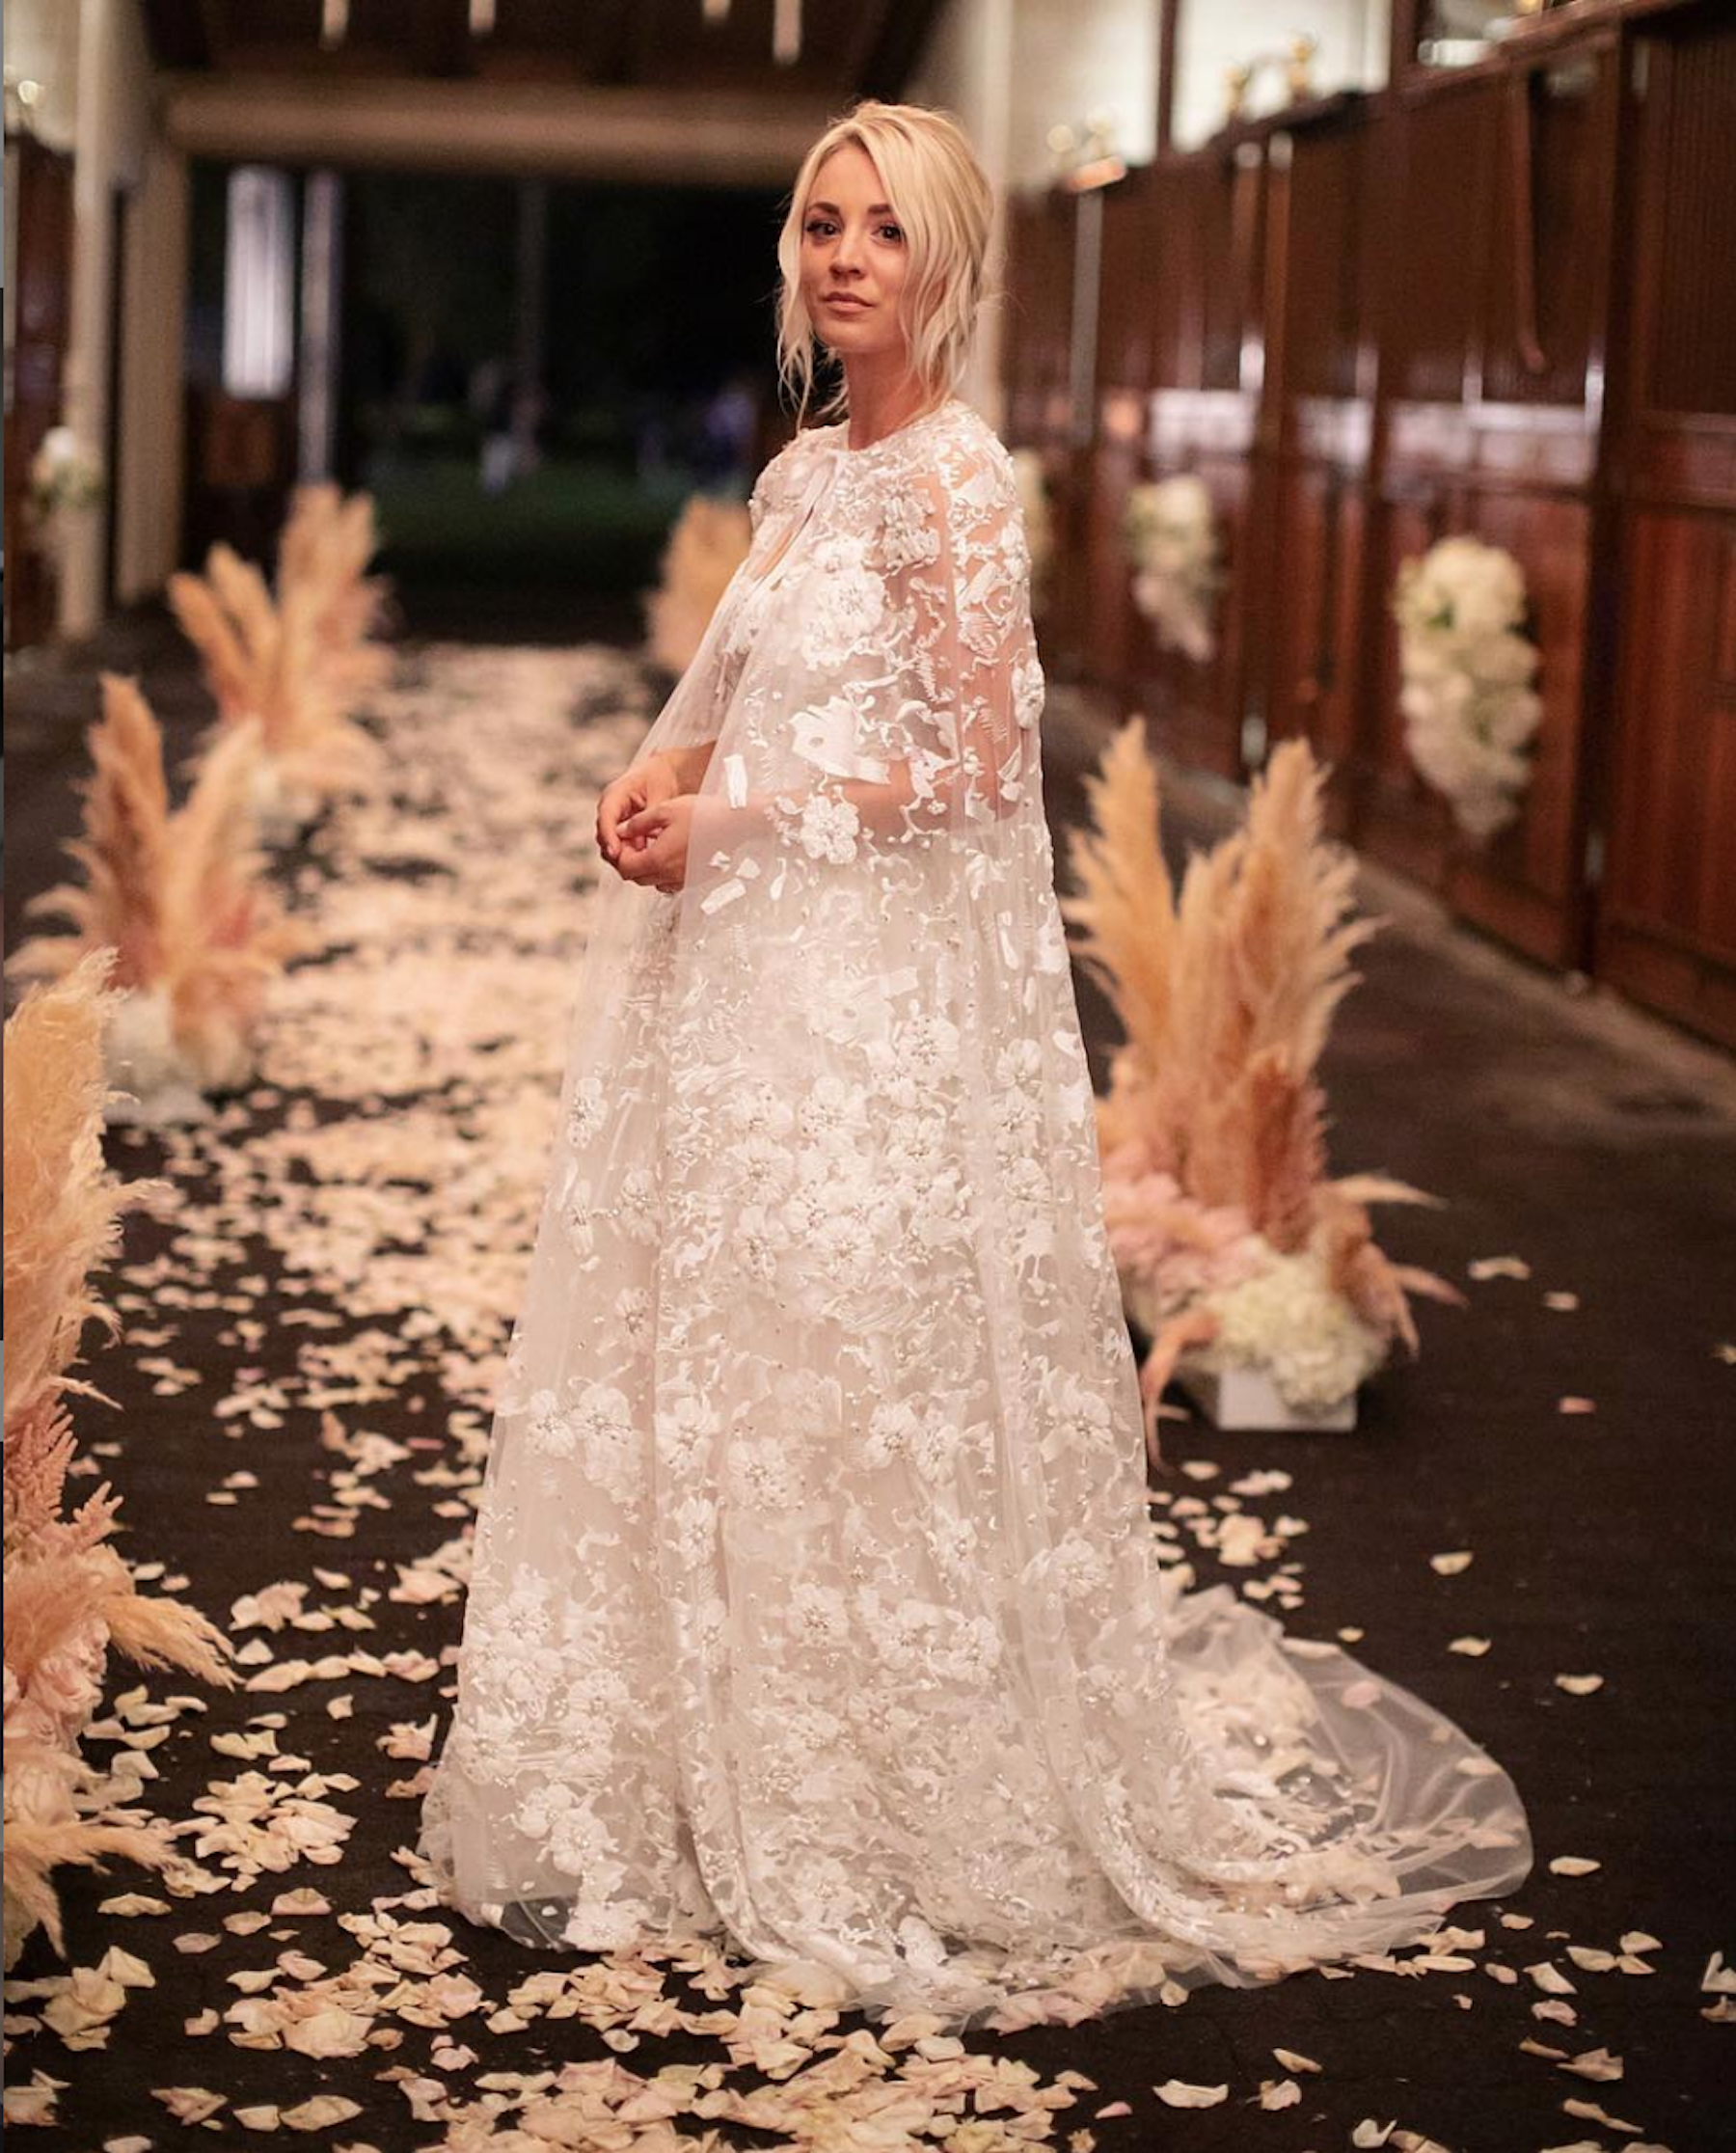 """""""Big Bang Theory"""" star Kaley Cuoco made luxury look effortless. - The actress tapped stylist Brad Goreski to help her choose this custom Reem Acra gown and cape.Photo by Claudia Craig."""